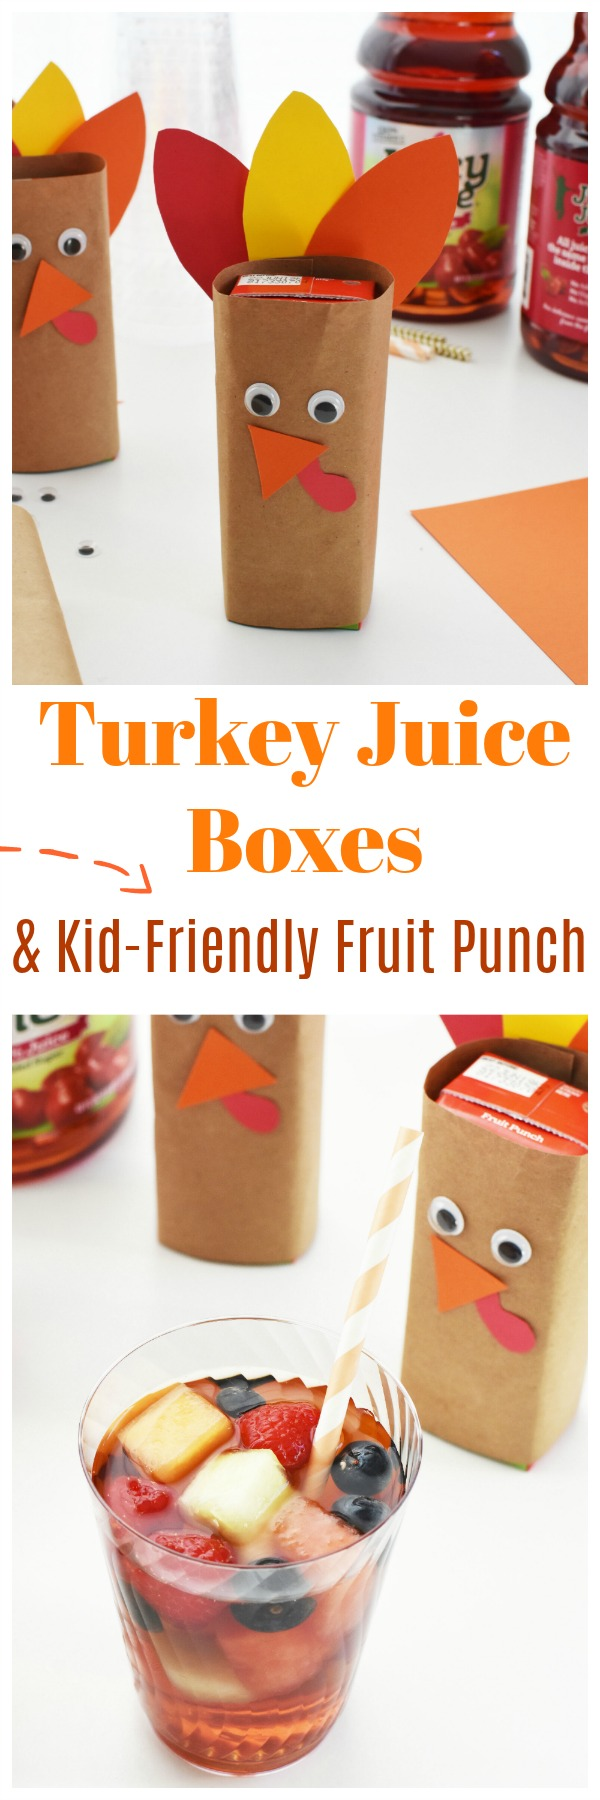 Kid-Friendly Thanksgiving Party Punch & Turkey Juice Boxes. A fun & Easy Thanksgiving craft for kids, these turkey juice boxes are easy and cheap to make. Pair them with some kids party punch with fruit, and no one will miss out on yummy Thanksgiving drinks! #thanksgiving #partyfruitpunch